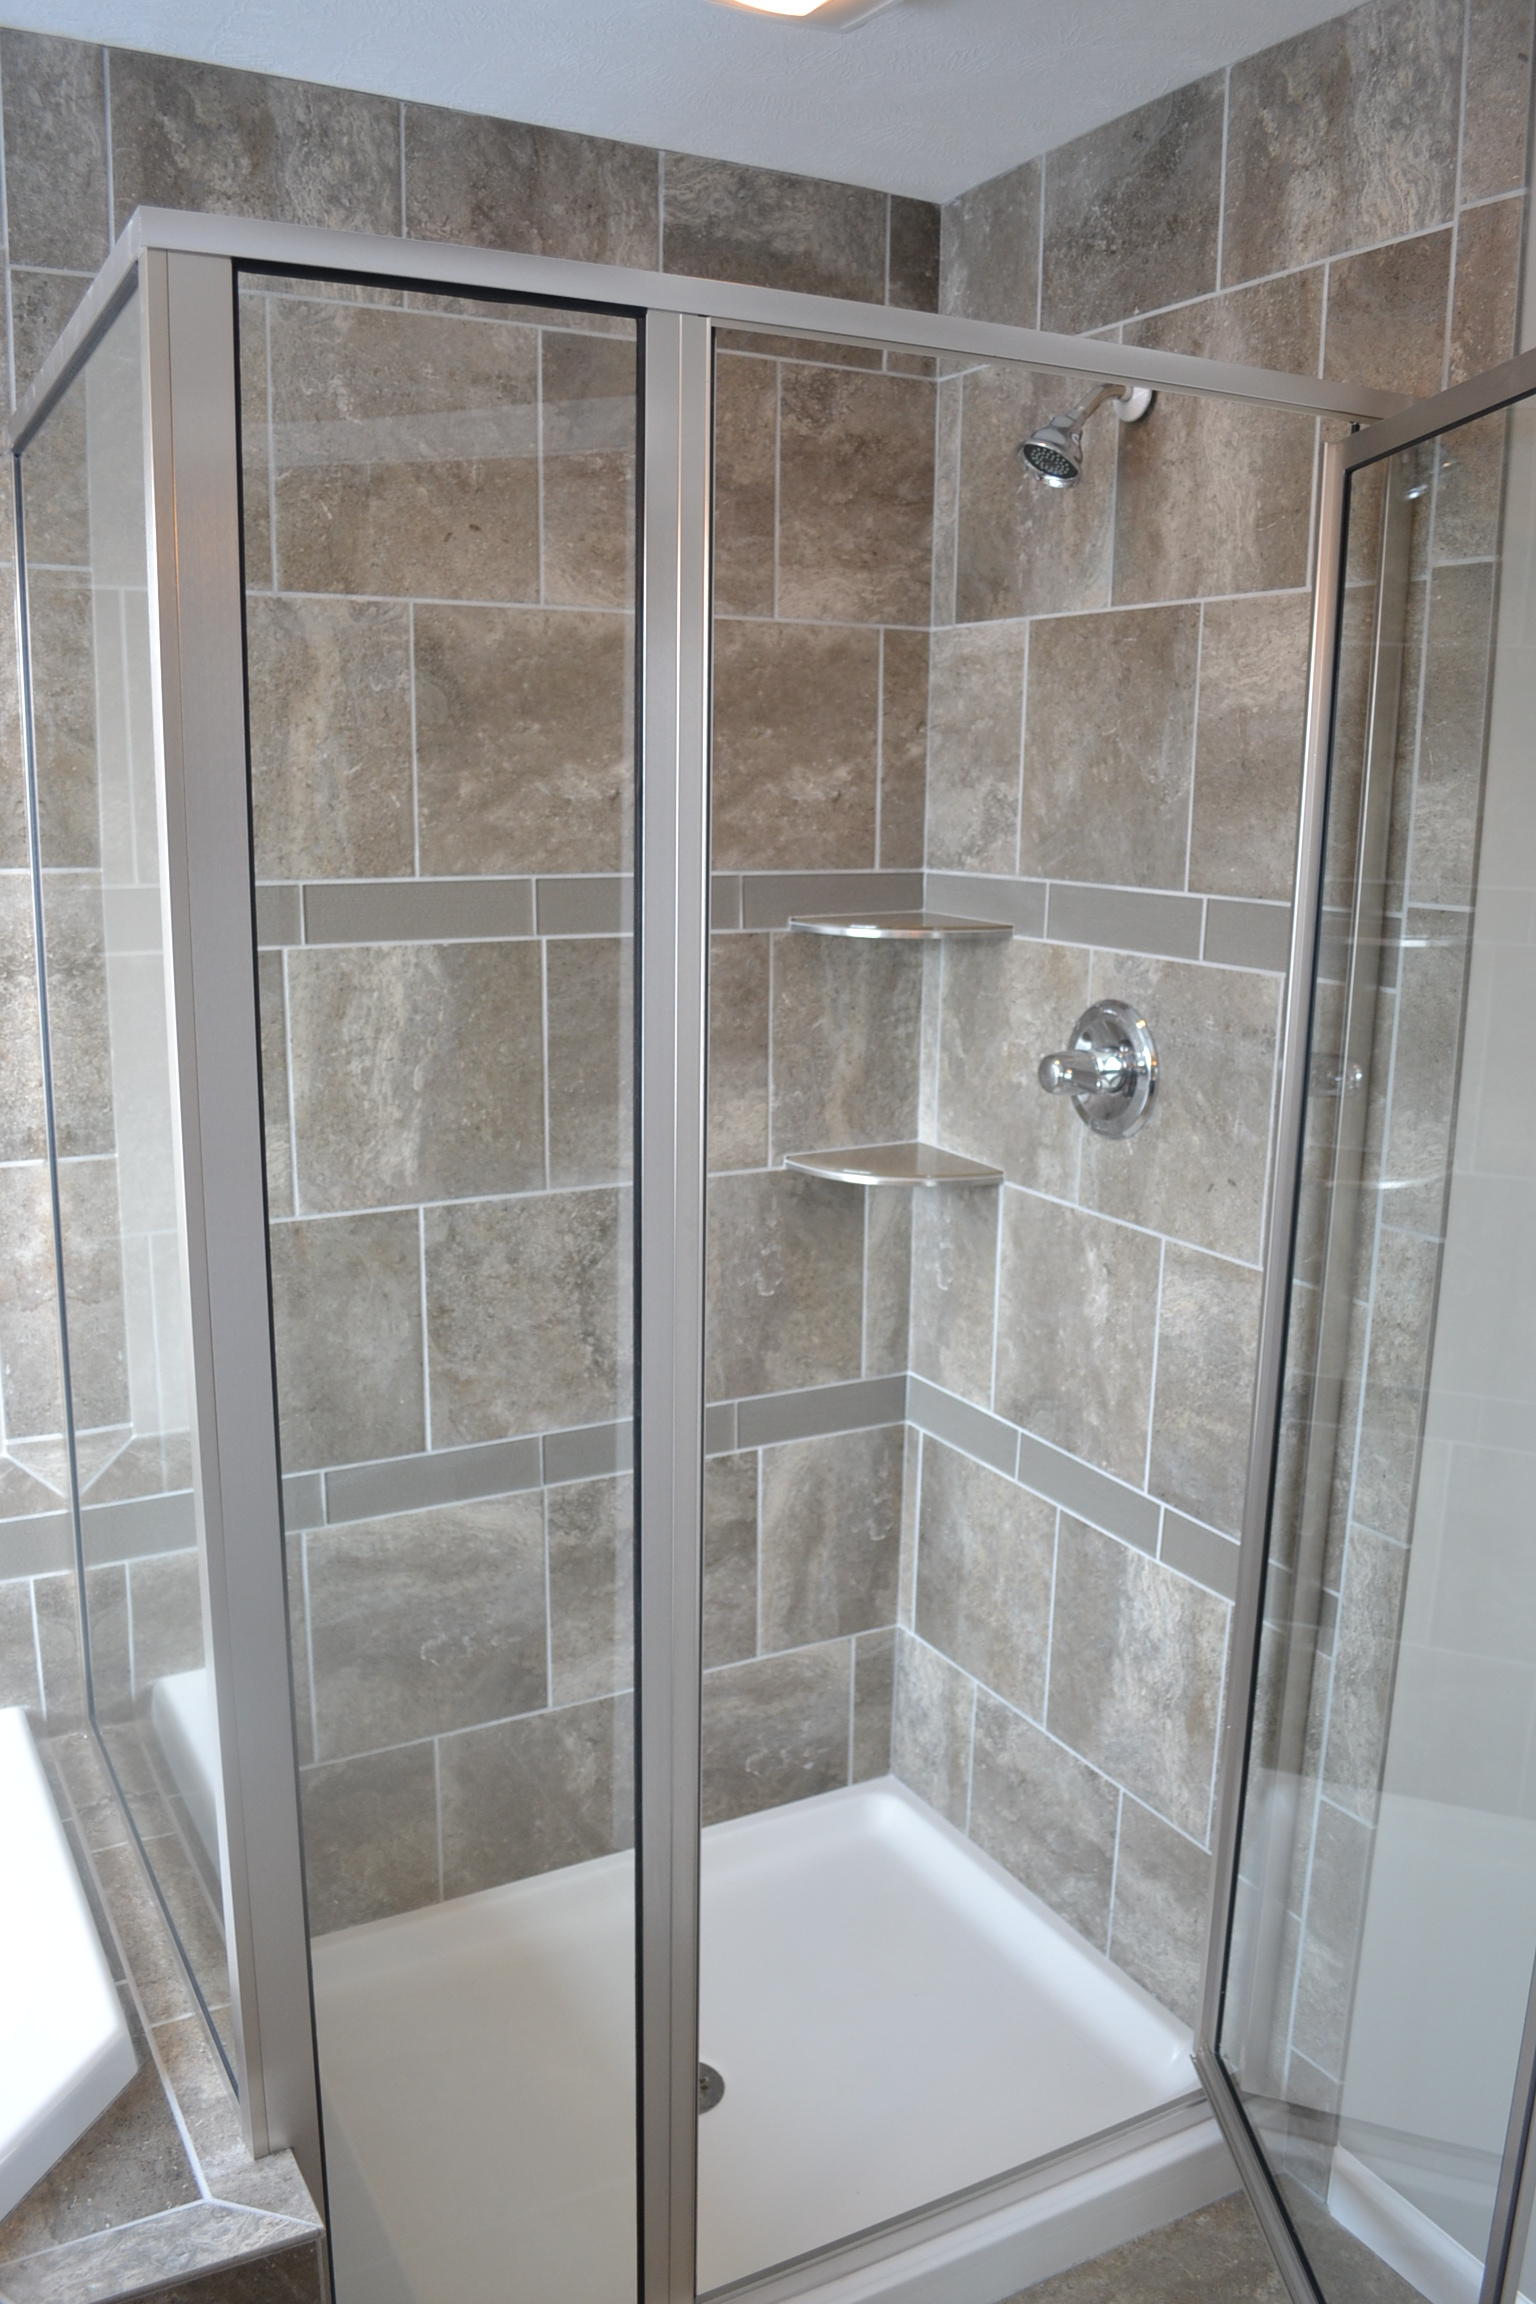 New Home in Champaign with nice shower